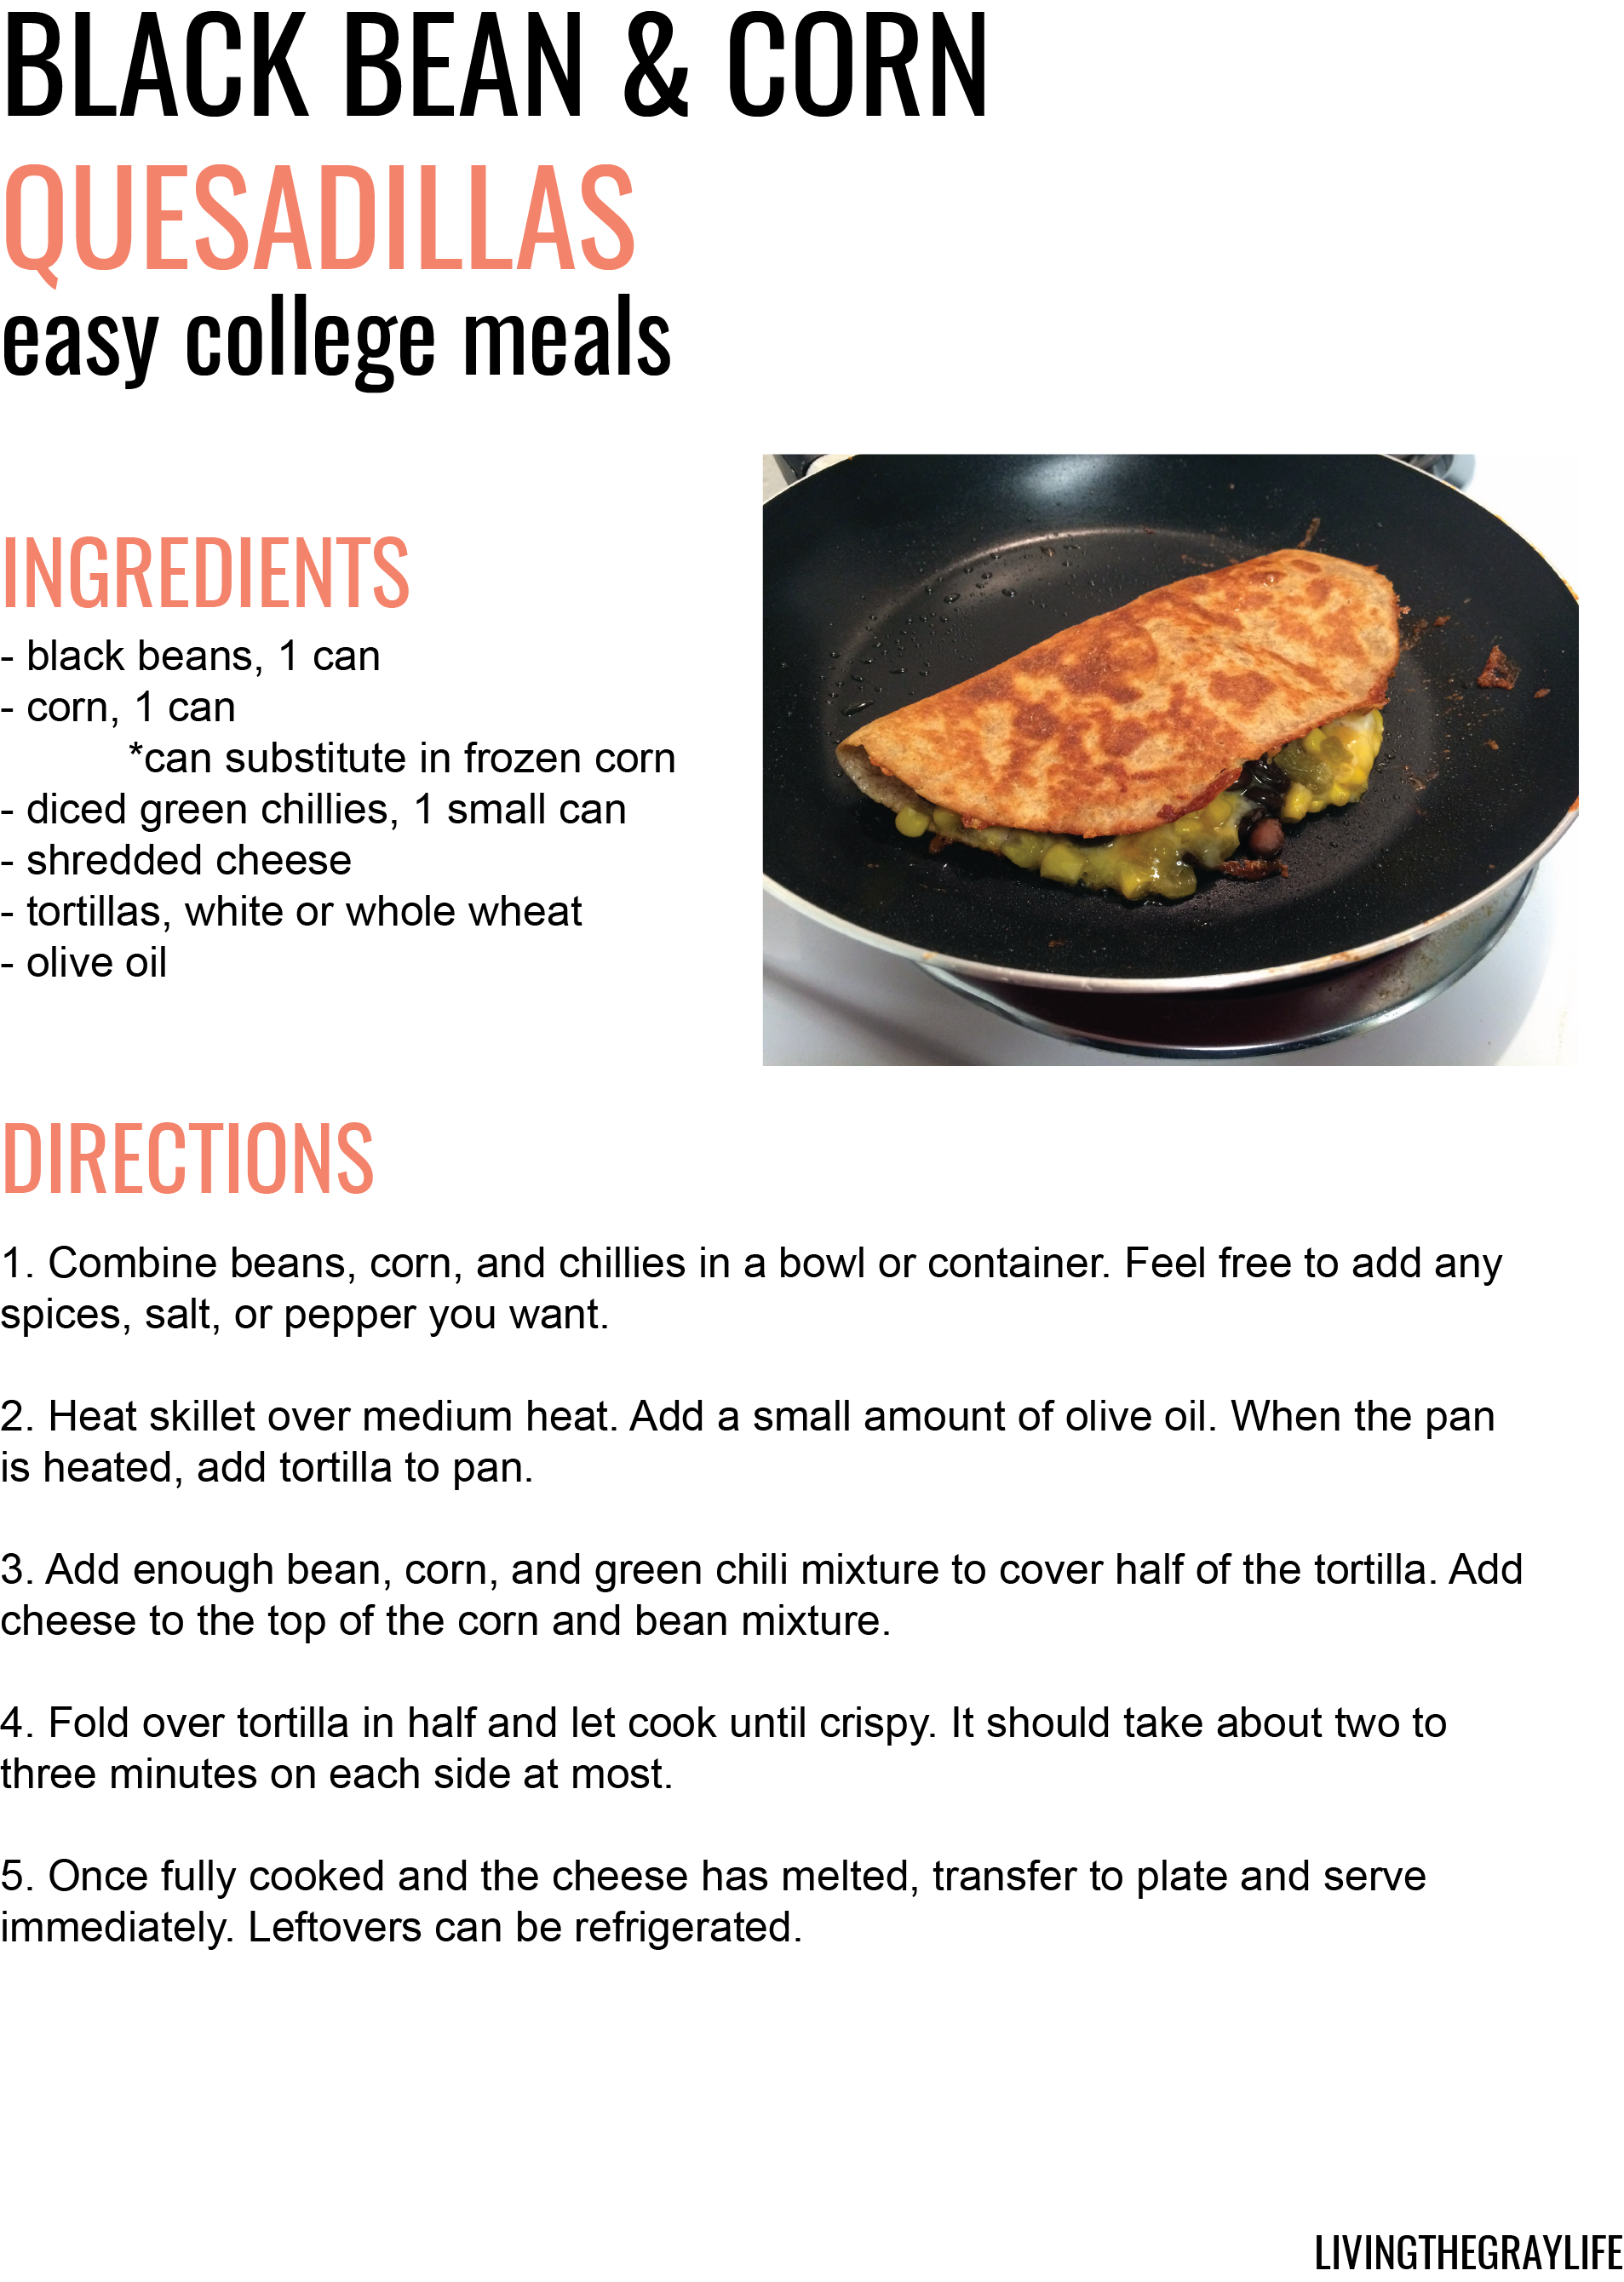 easy college meals black bean and corn quesedilla